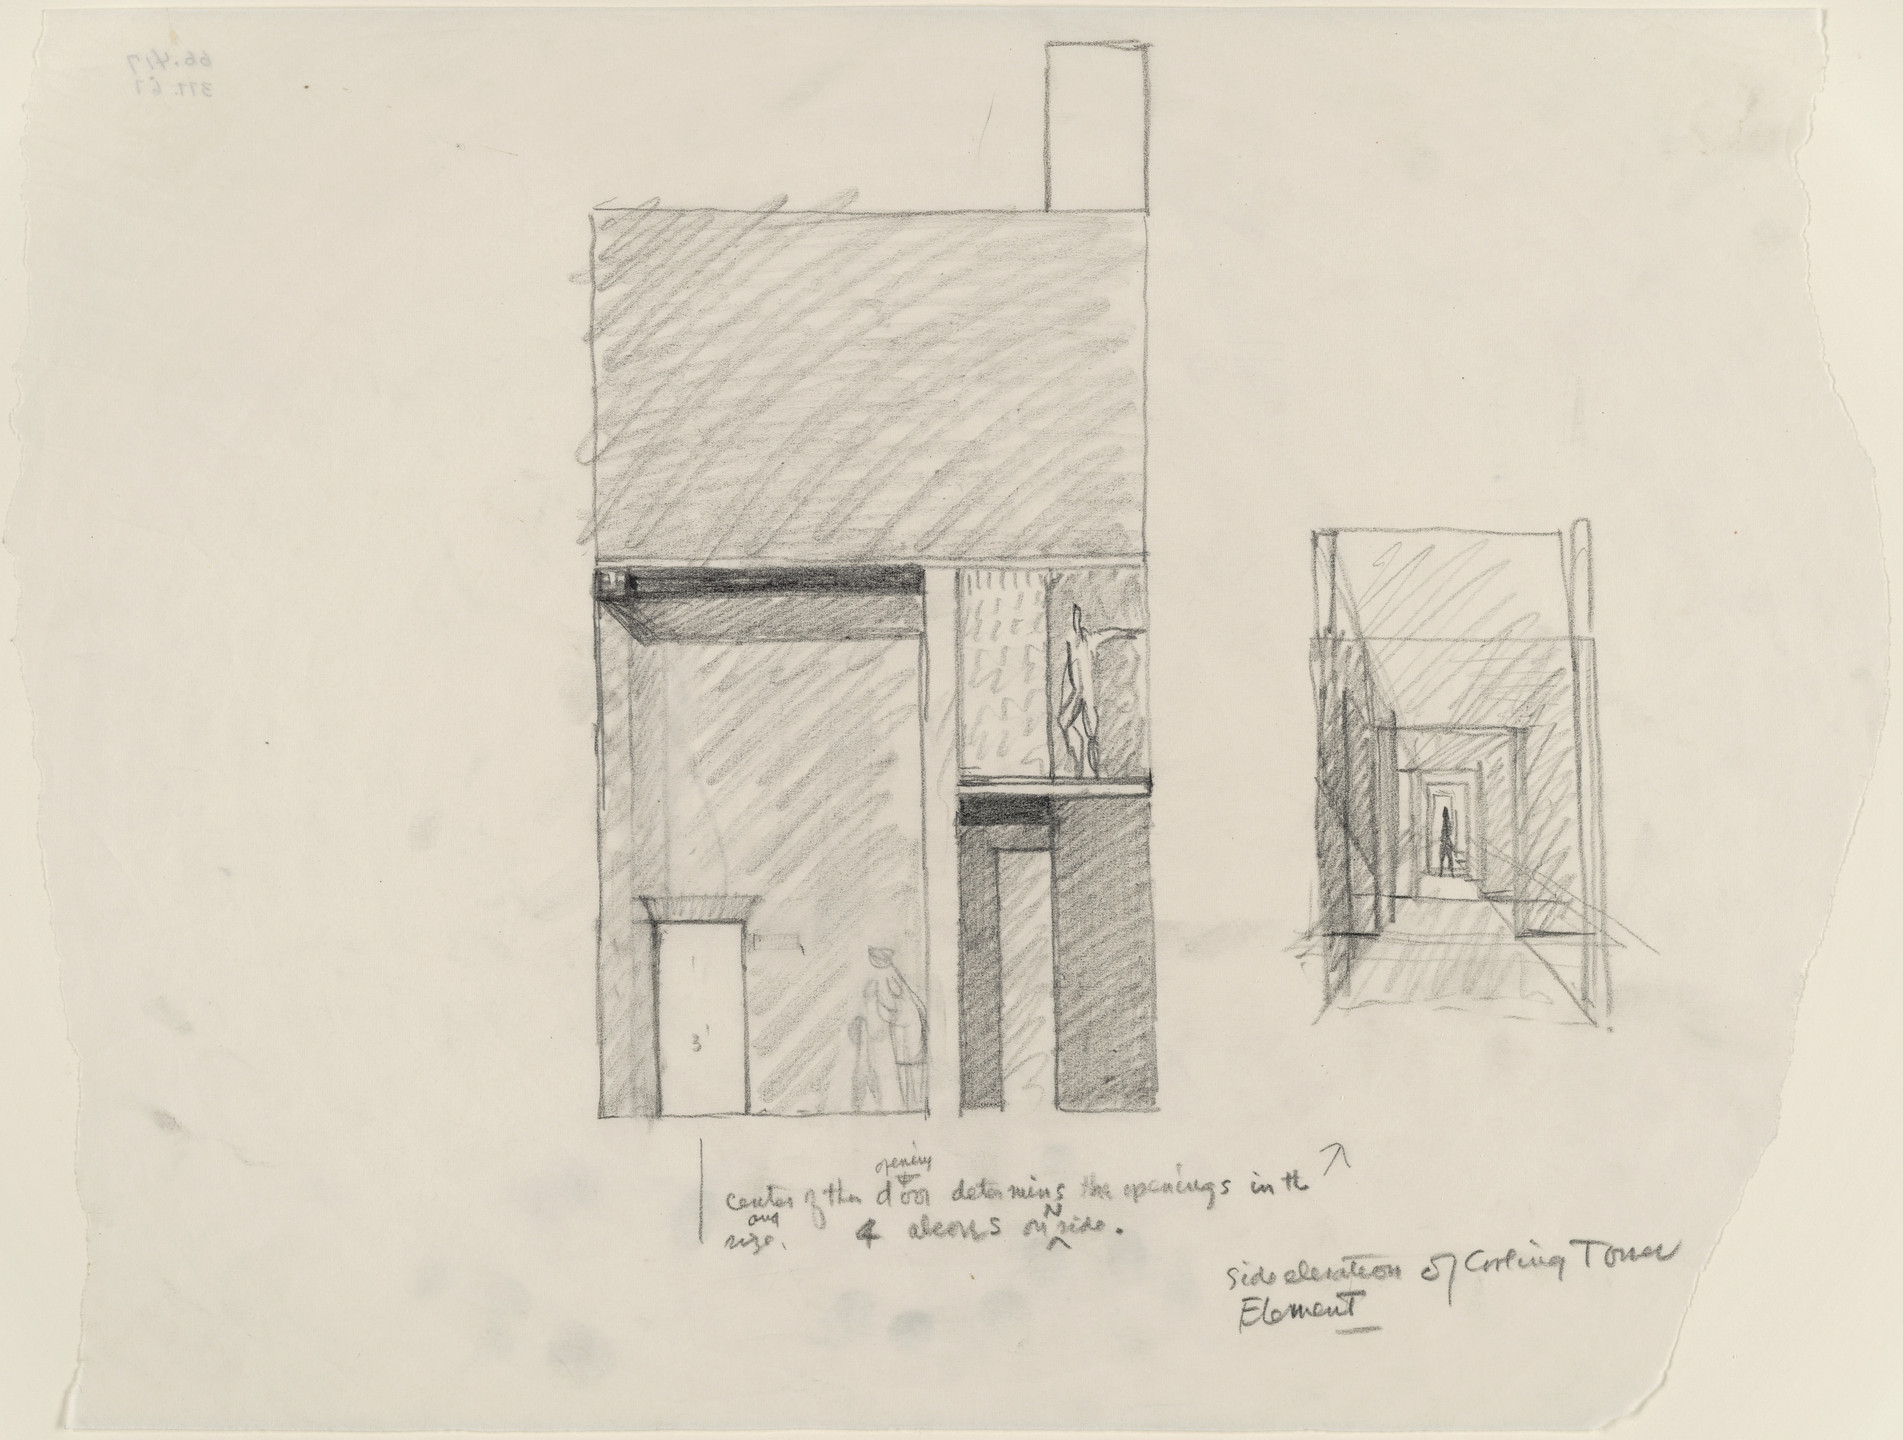 Louis I. Kahn. Tribune Review Publishing Company Building, Greensburg, Pennsylvania, Entrance elevation sketch. 1958